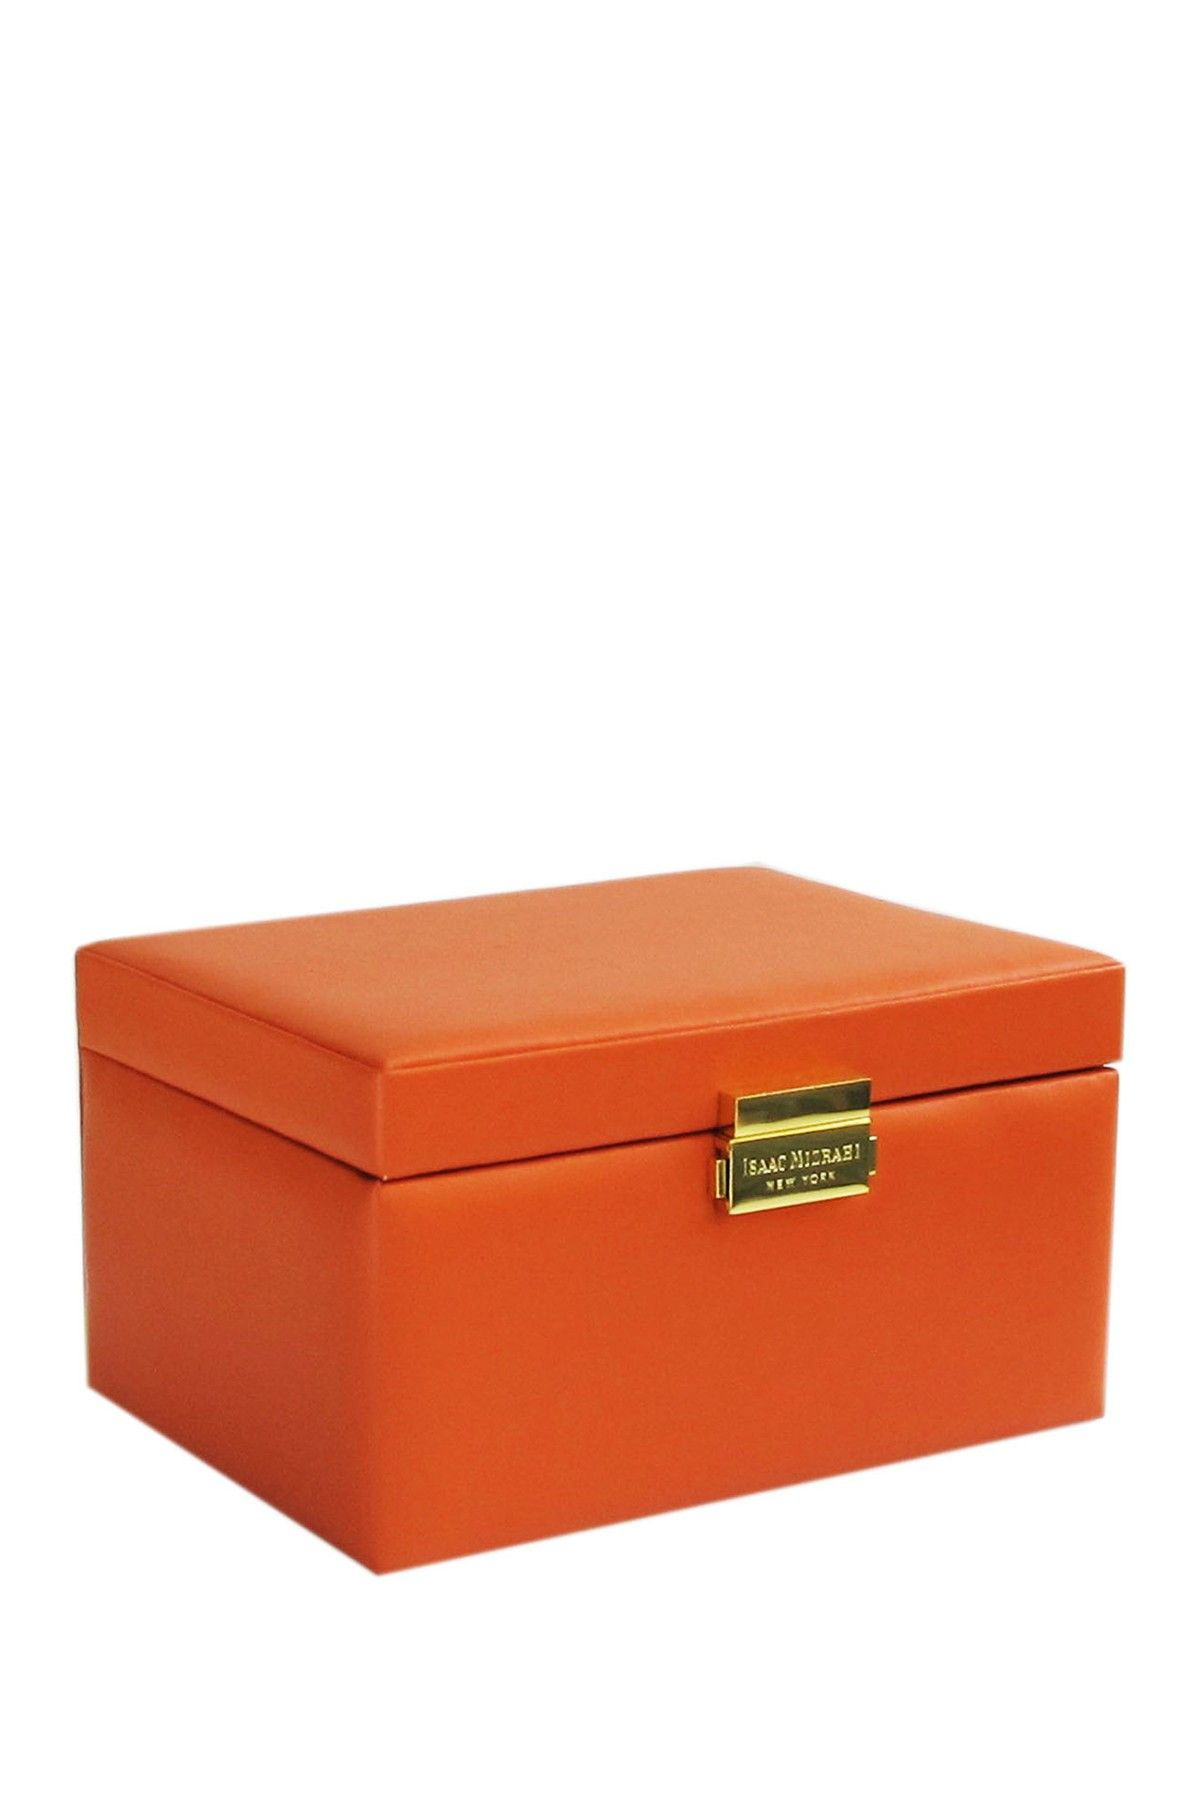 Isaac Mizrahi Orange Faux Leather Jewelry Box by Jay Import on